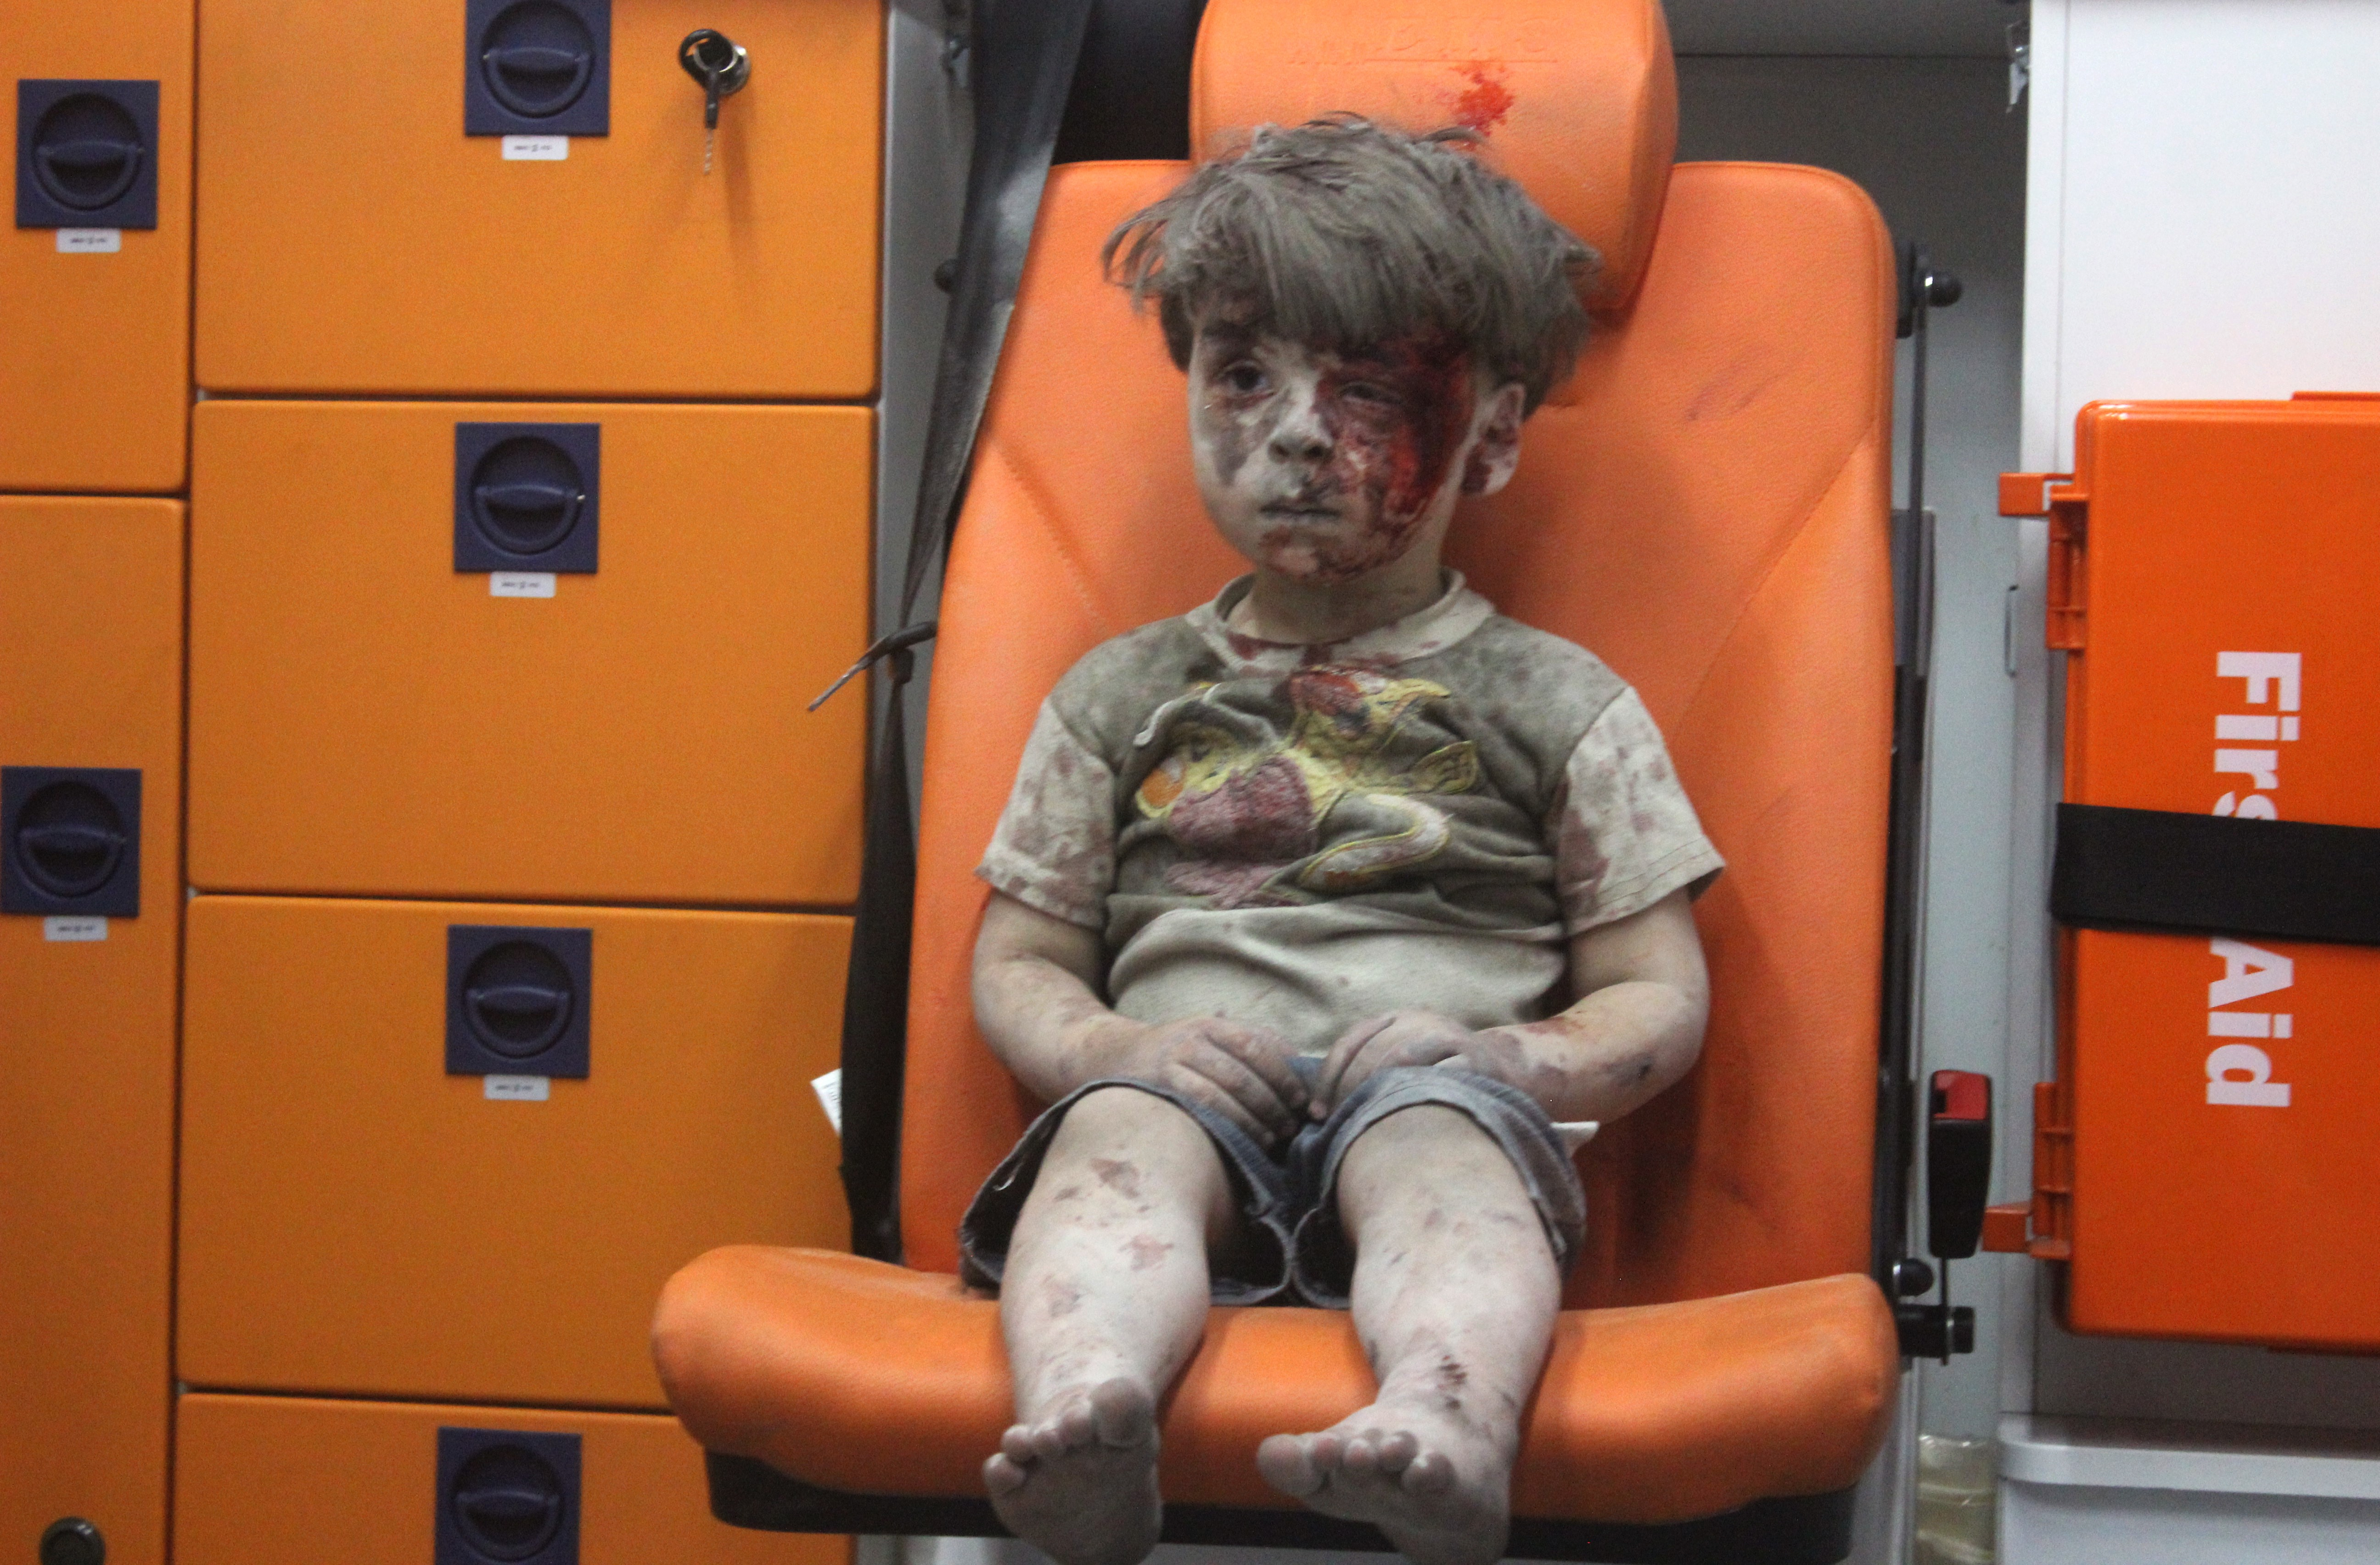 Five-year-old Syrian boy Omran Daqneesh sits alone in the back of the ambulance after he sustained injuries during an airstrike targeting the Qaterji neighborhood of Aleppo on Aug. 17, 2016.